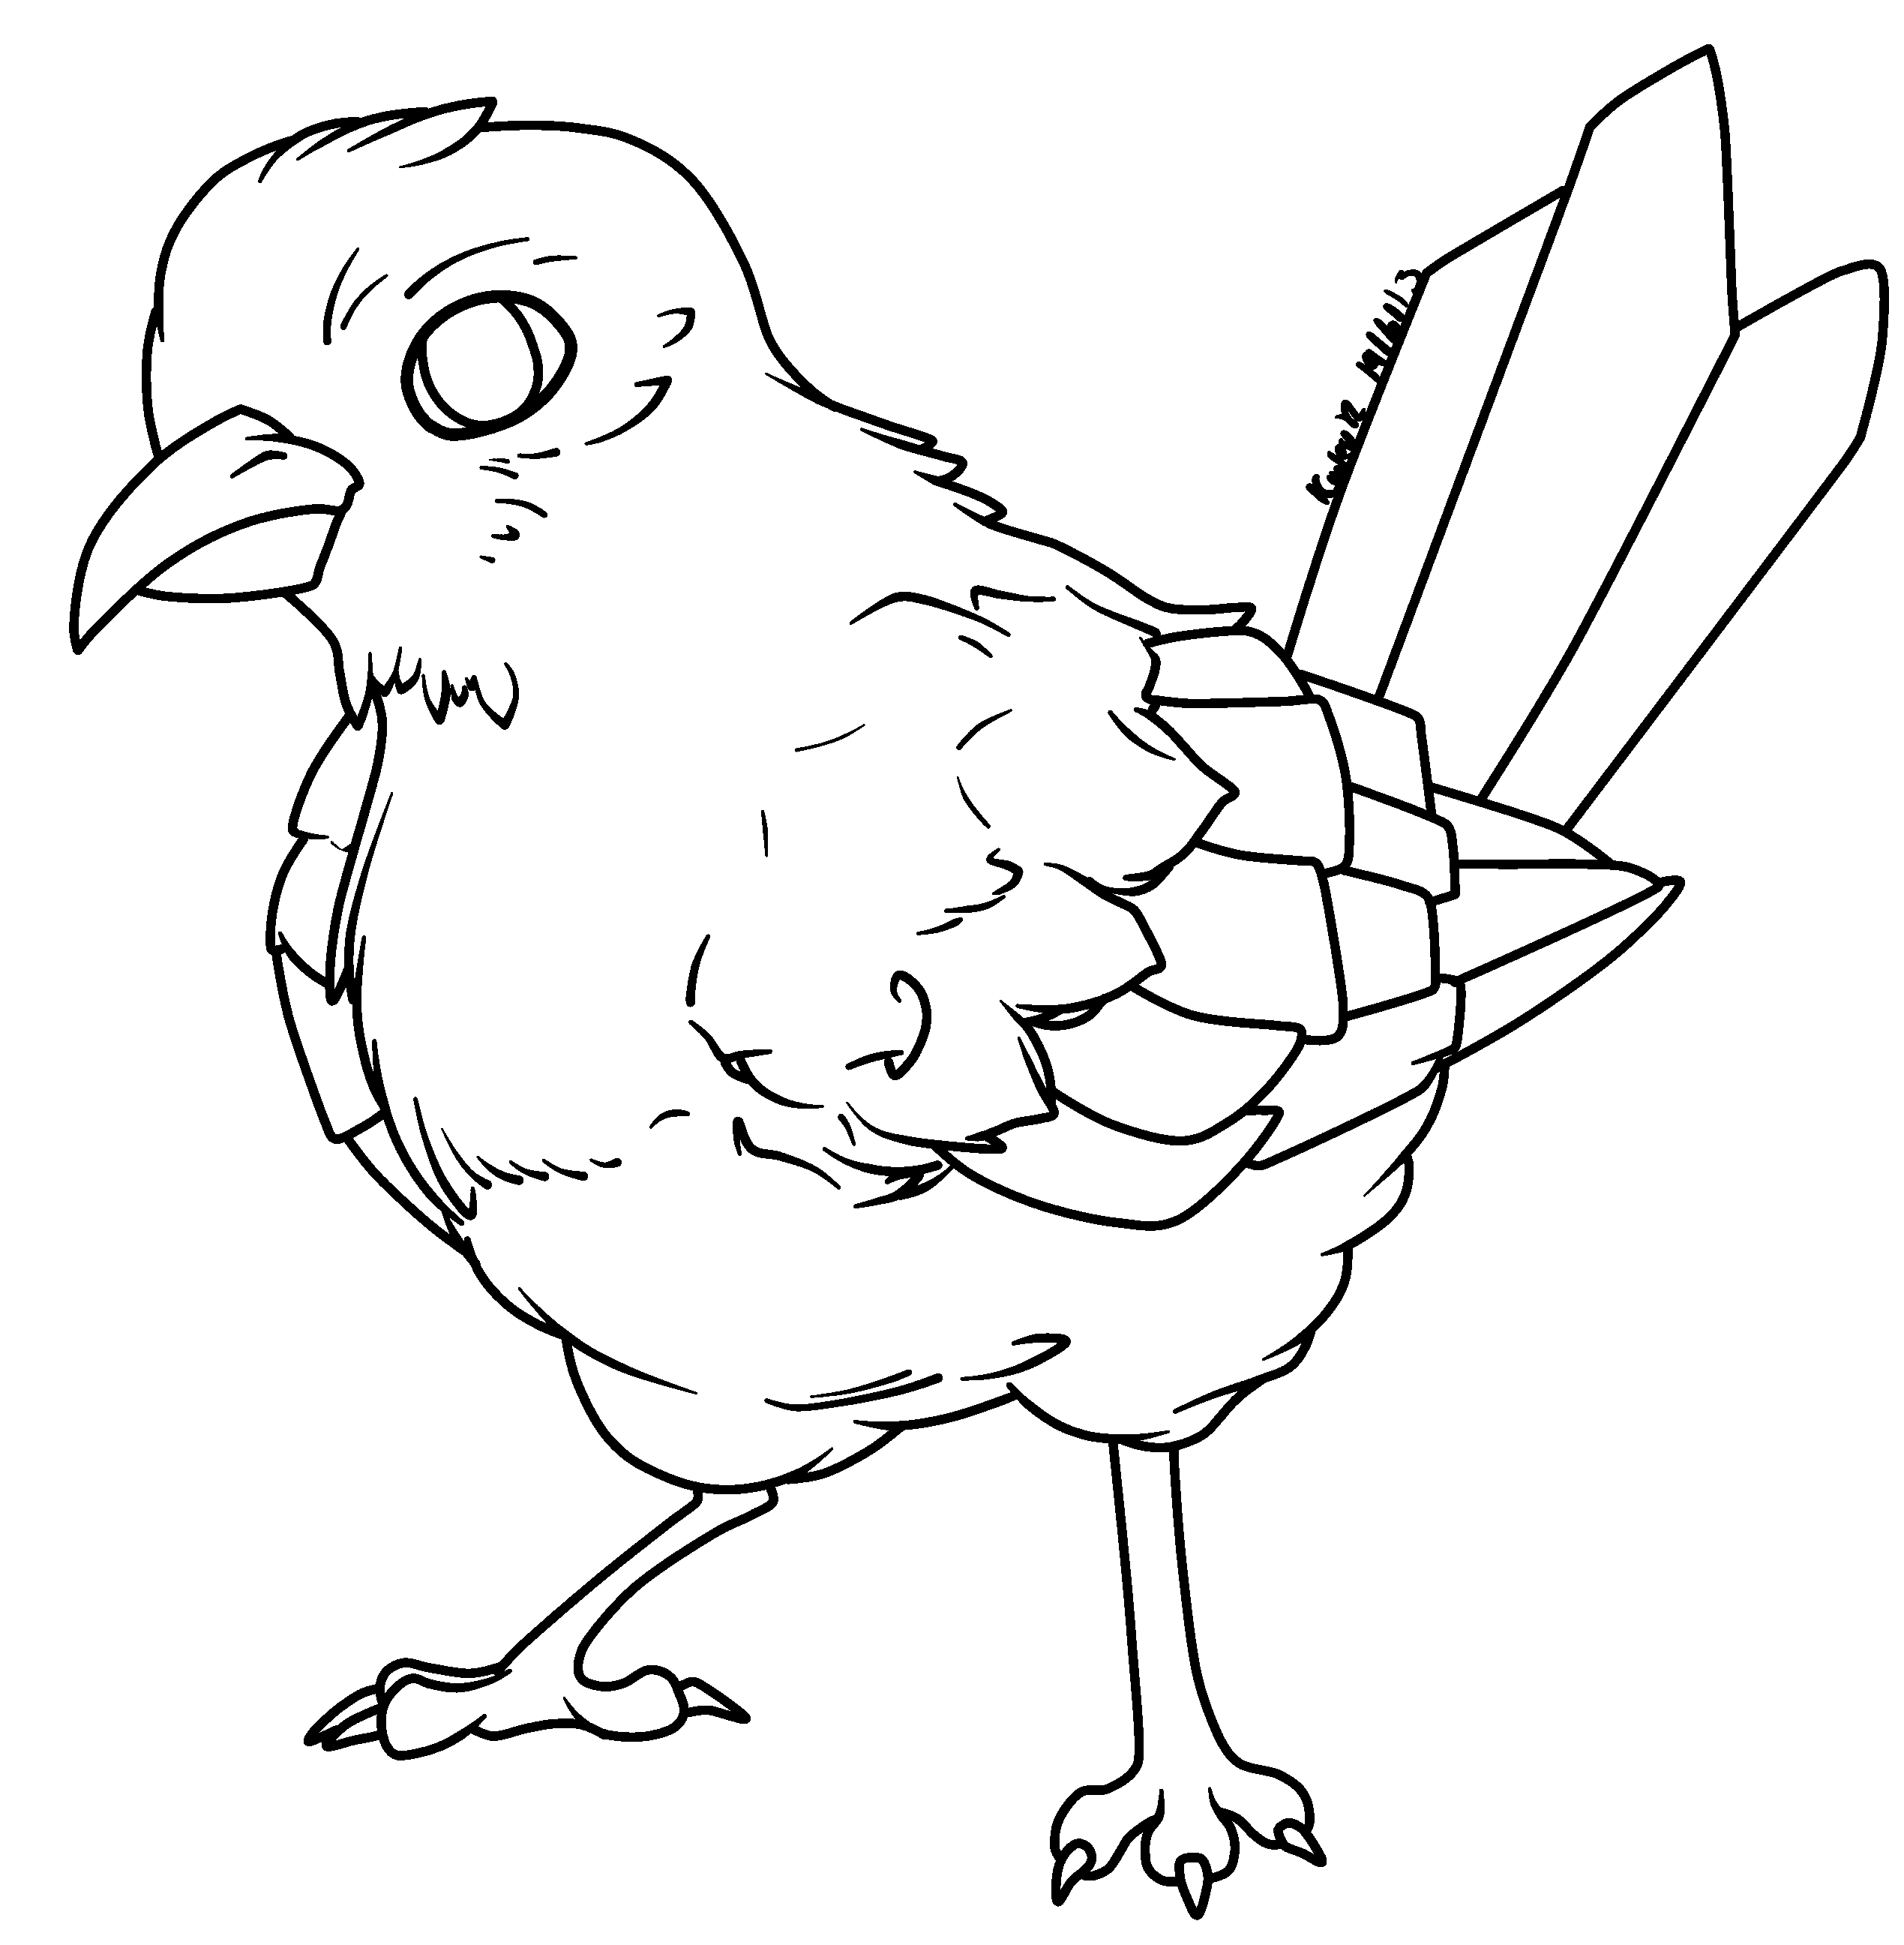 Line Art Quail : Rq bird lineart by abyssinchaos on deviantart